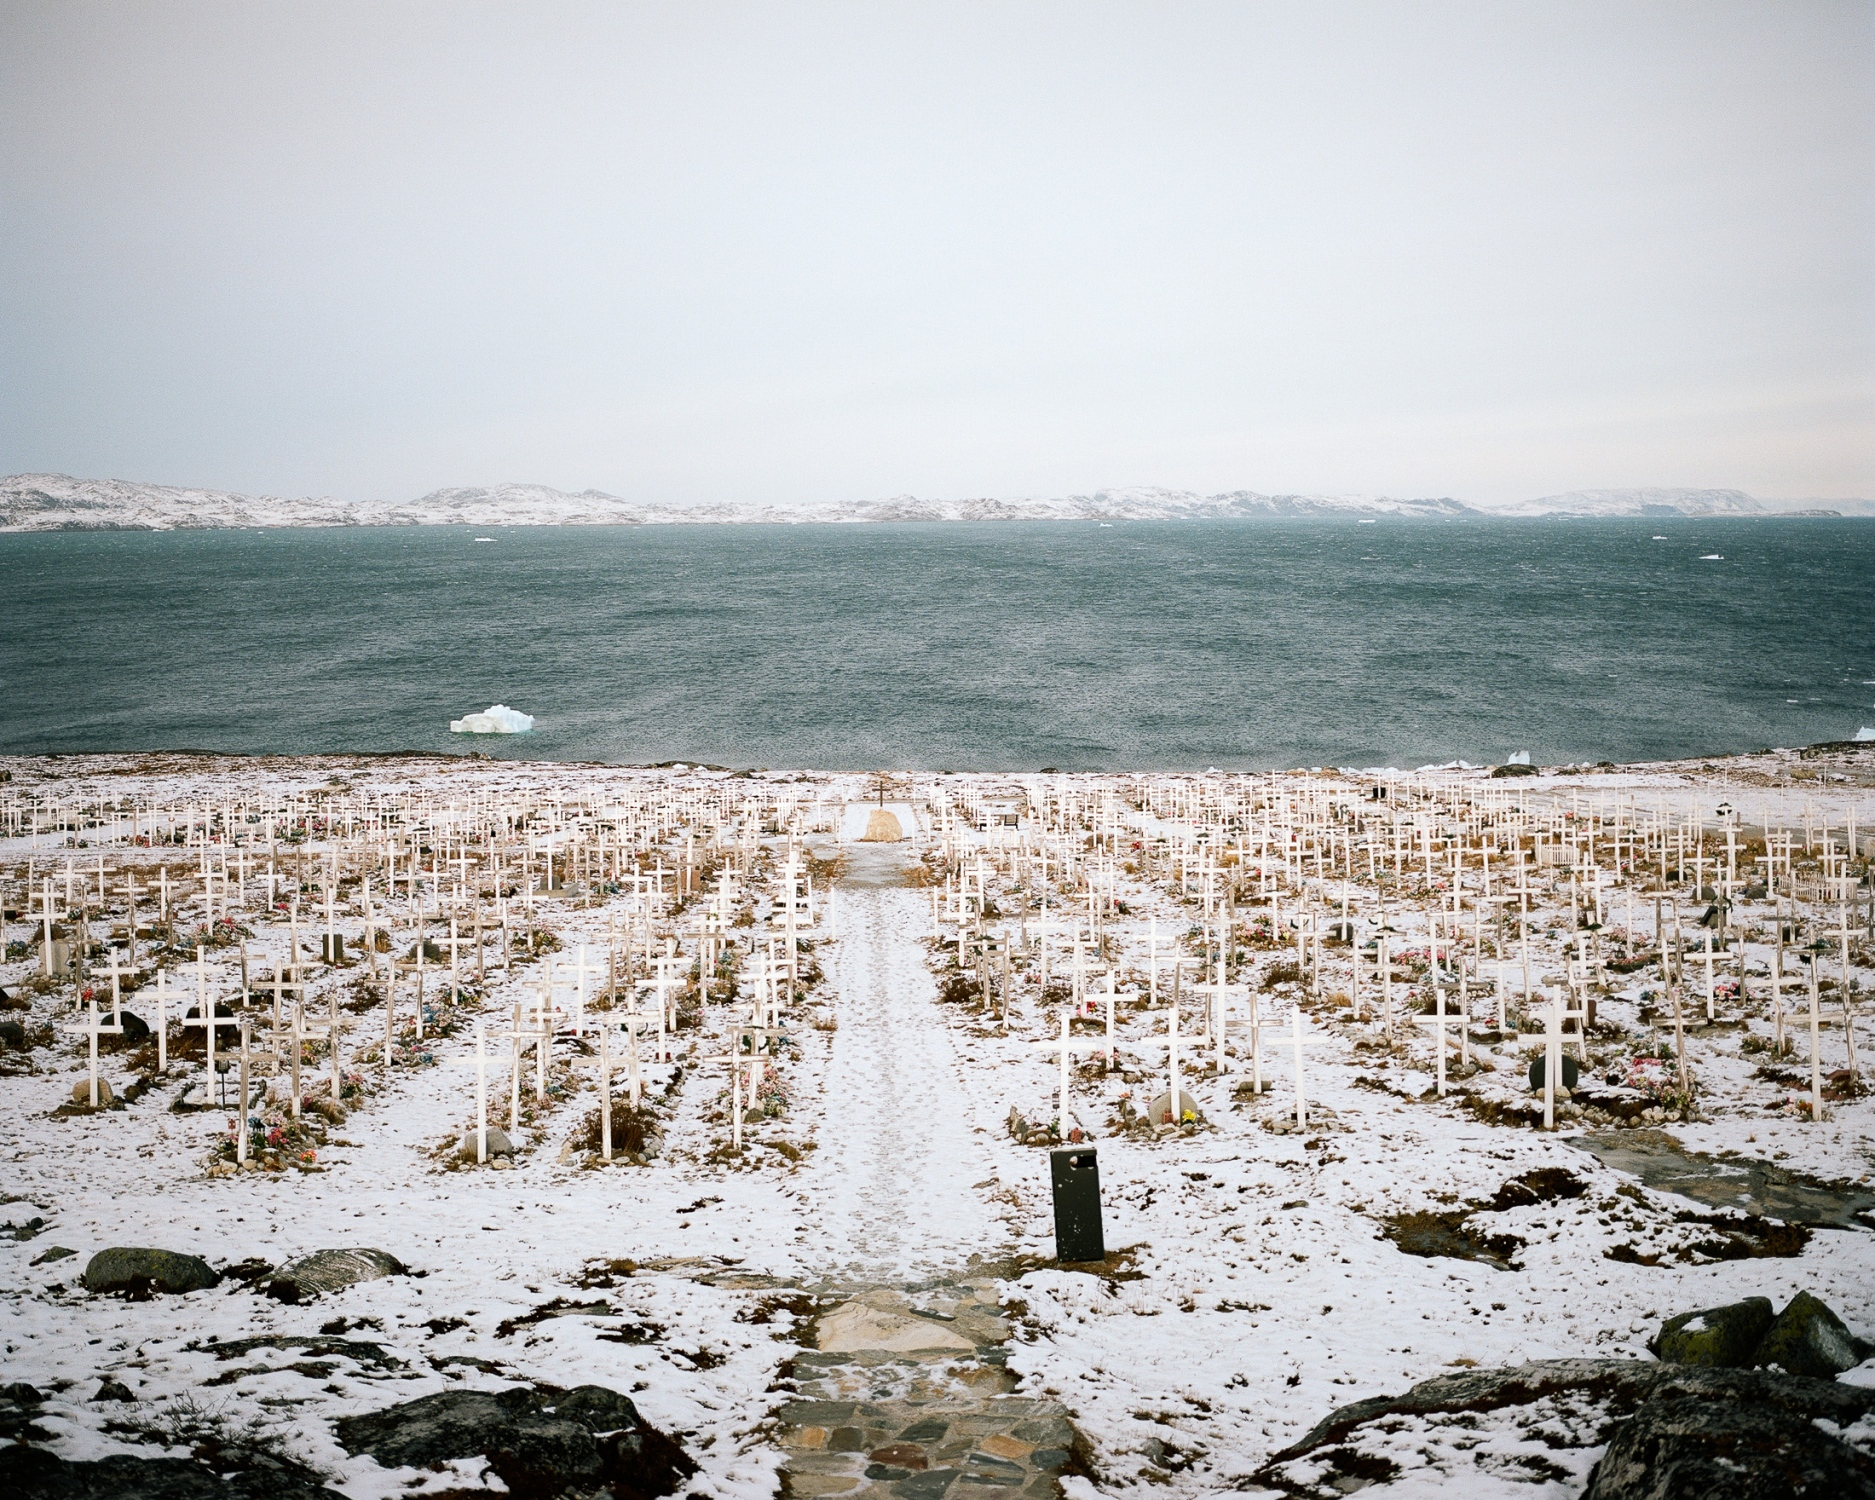 Nuuk cemetery. Nuuk, the capital city and most populated city of Greenland (16 454 habitants) is the administrative centre of the island with all institutions and administrative buildings.